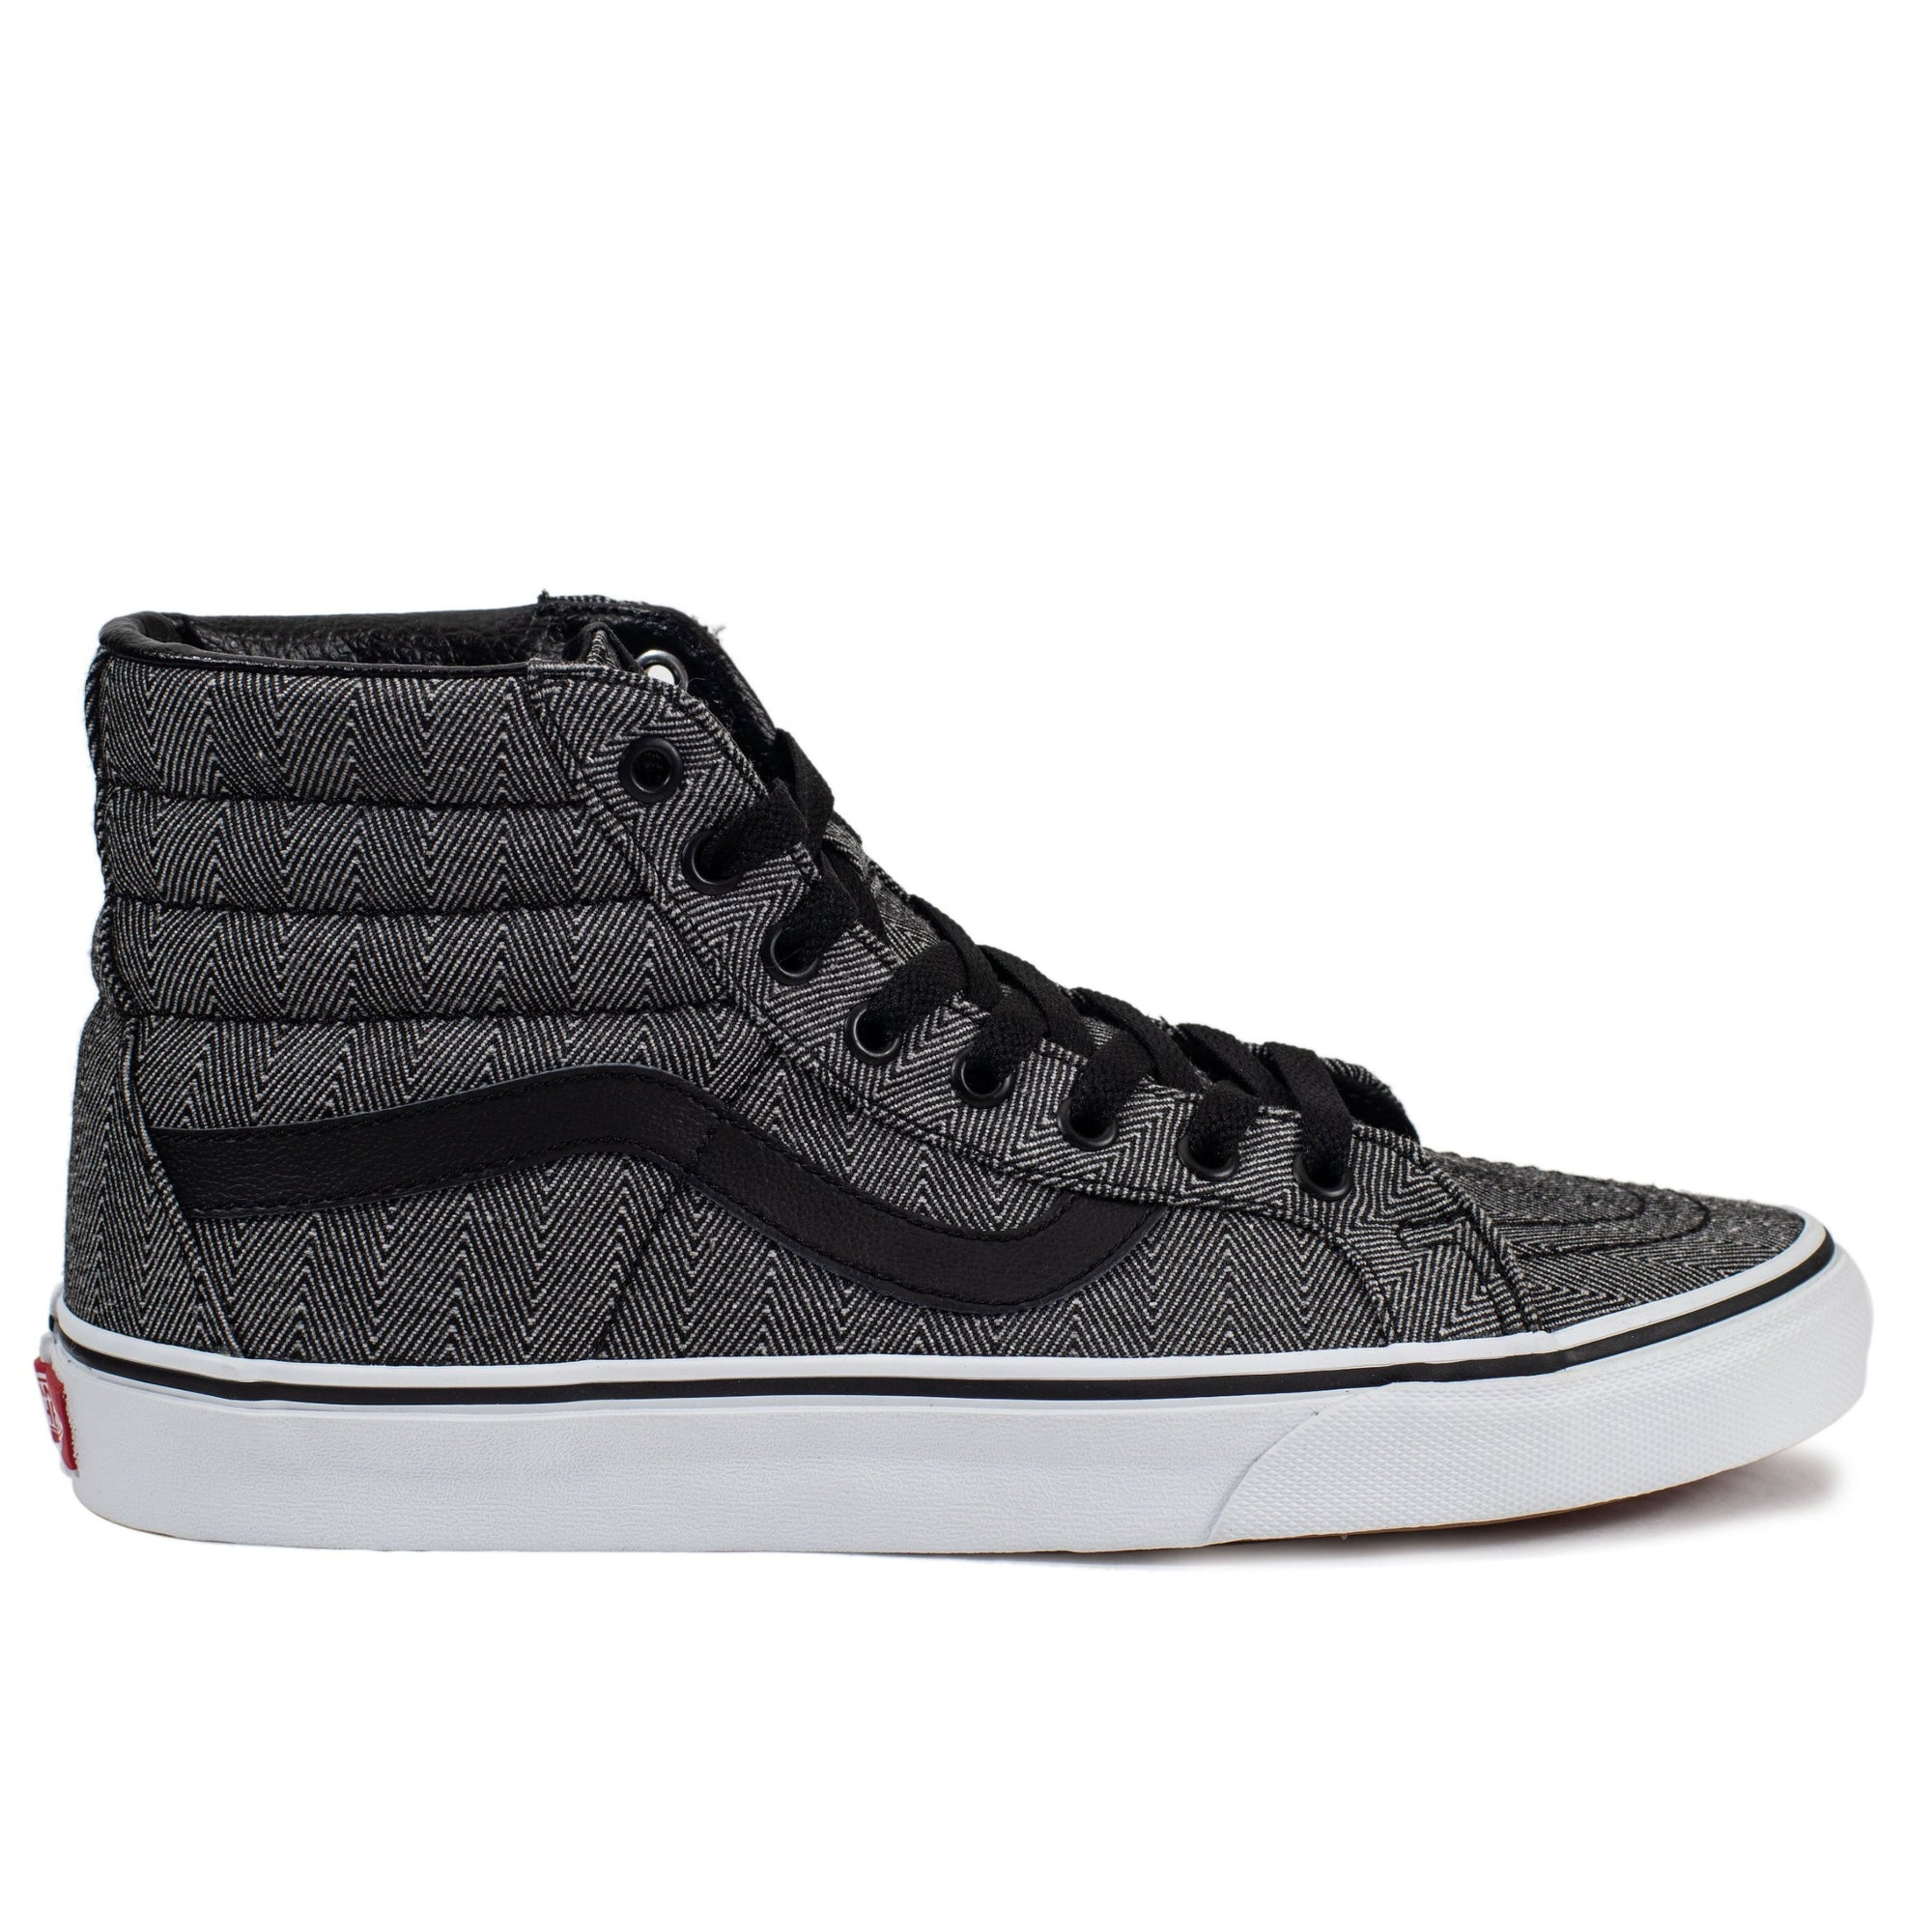 2df2f1e99e2 Vans Sk8-Hi Reissue - (Oversized Herringbone) Black True White - Chane